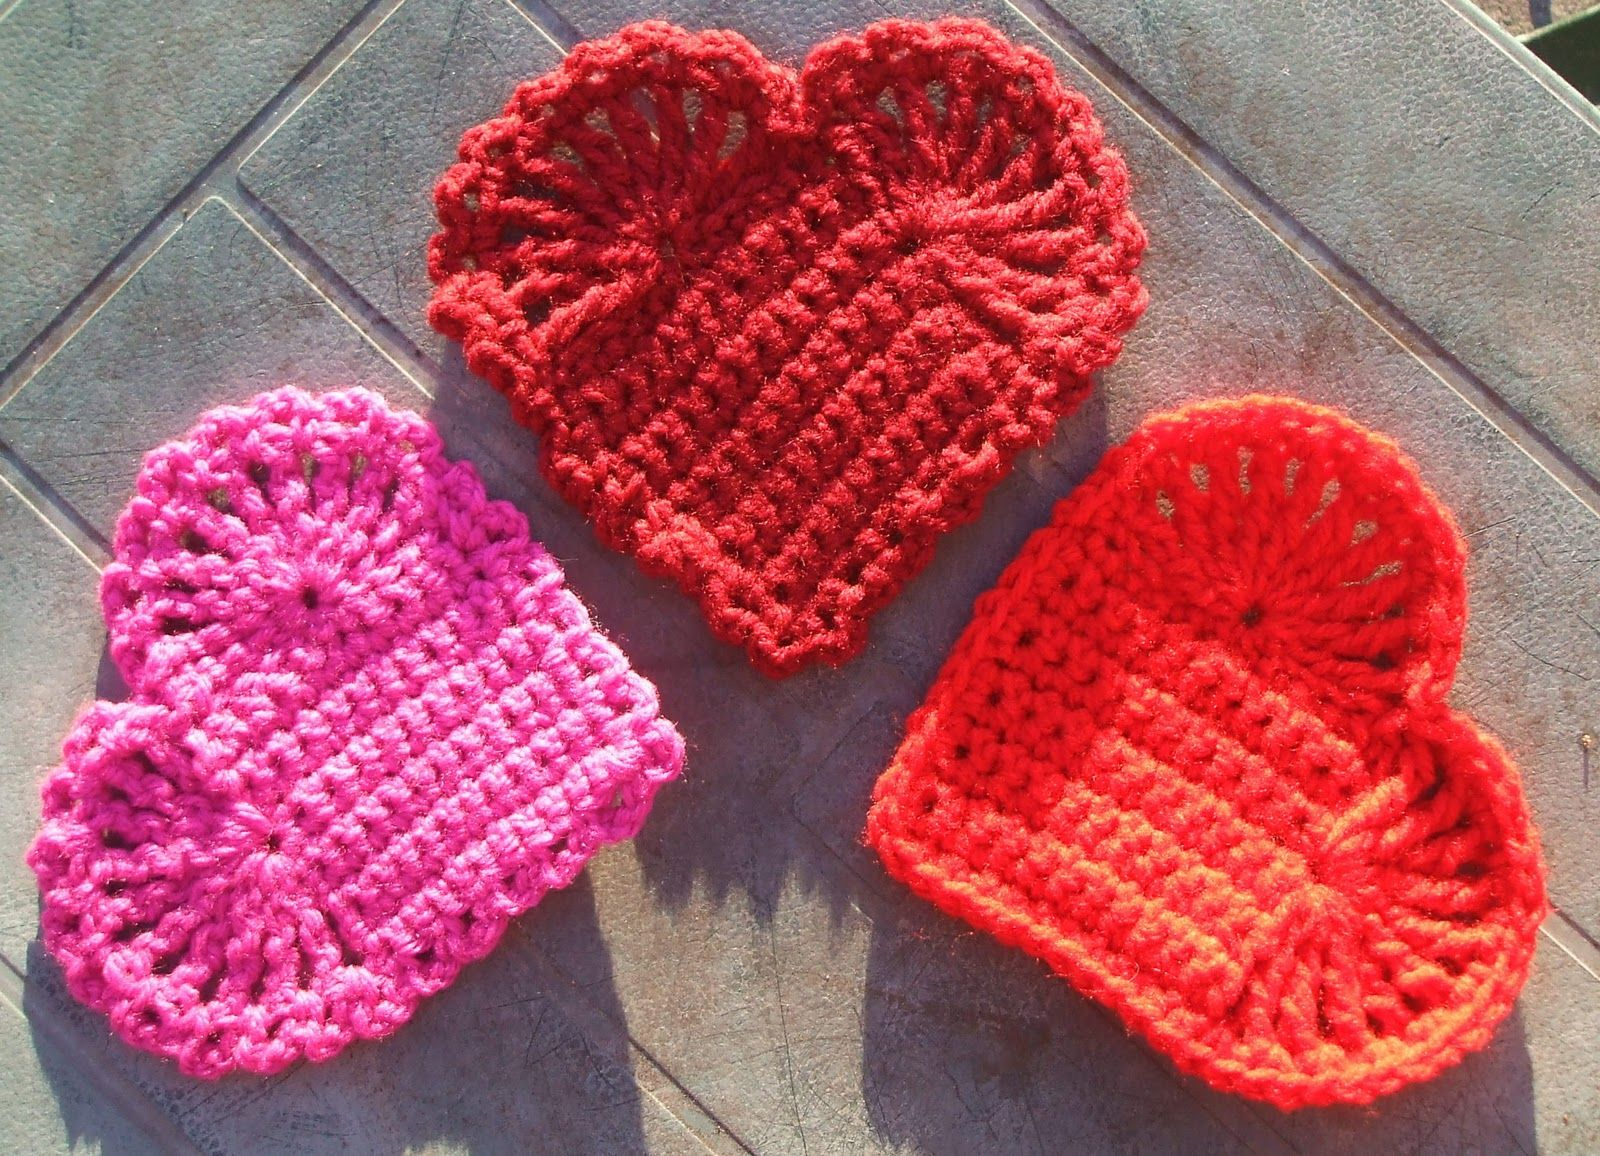 Crochet hearts craft ideas cool stuff pinterest heart a foothill home companion crochet heart pattern bankloansurffo Images